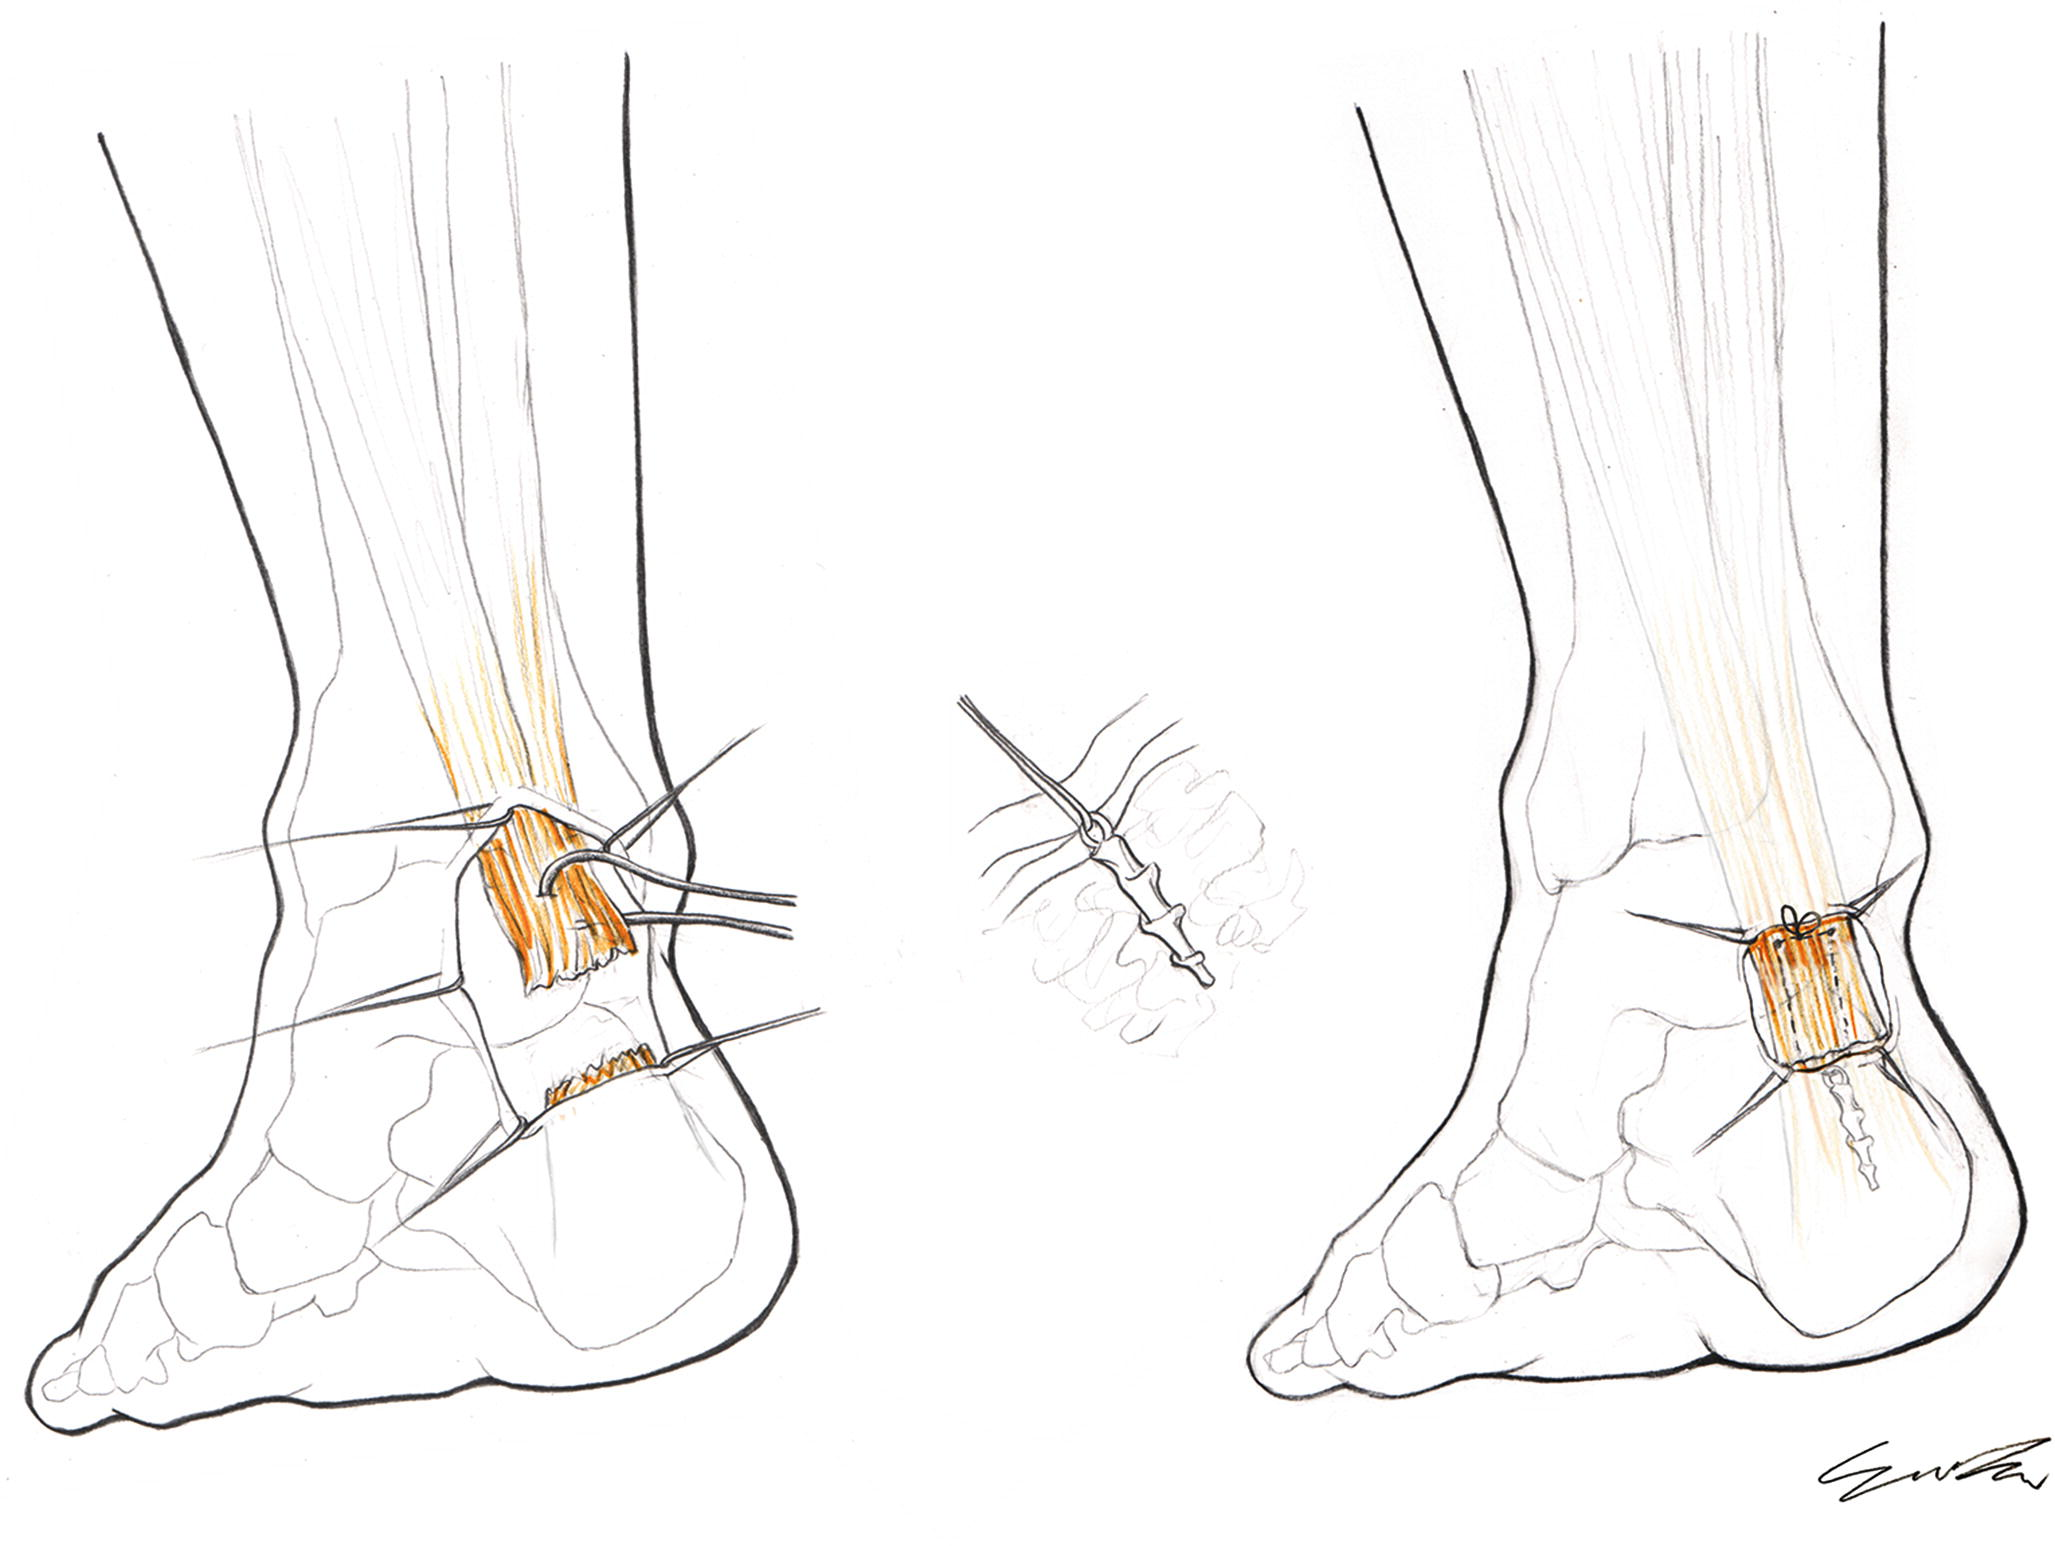 subcutaneous rupture of the achilles tendon springerlink Tendons in Your Ankle open image in new window